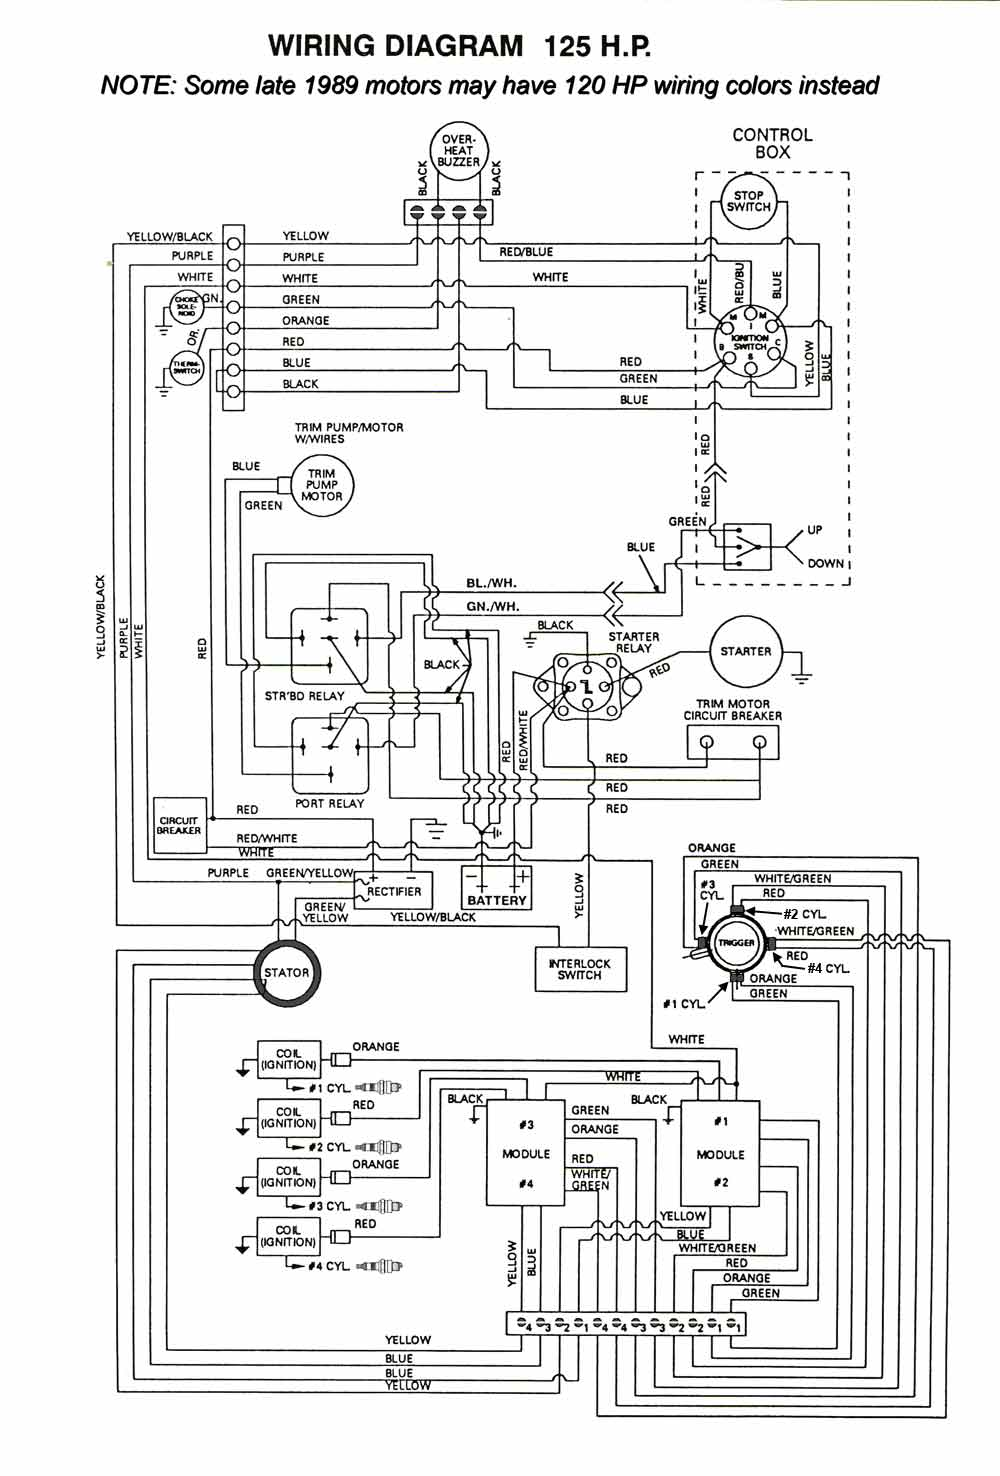 125 Hp Wiring Diagram - Wiring Data Diagram  Hp Mercury Wiring Diagram on mercury throttle control diagram, mercruiser parts diagram, 25 horse mercury wiring diagram, mercury outboard wiring diagram, 2006 mercury milan ignition wiring diagram, 75 hp force outboard diagram, mercury ignition switch wiring diagram, merc harness connector diagram, 2003 mercury bigfoot 40 water diagram, johnson ignition wiring diagram, 1988 evinrude 35 hp diagram, johnson 40 hp engine wiring diagram, yamaha 90 hp outboard diagram, mercury outboard linkage diagram, 3 hp yamaha diagram,